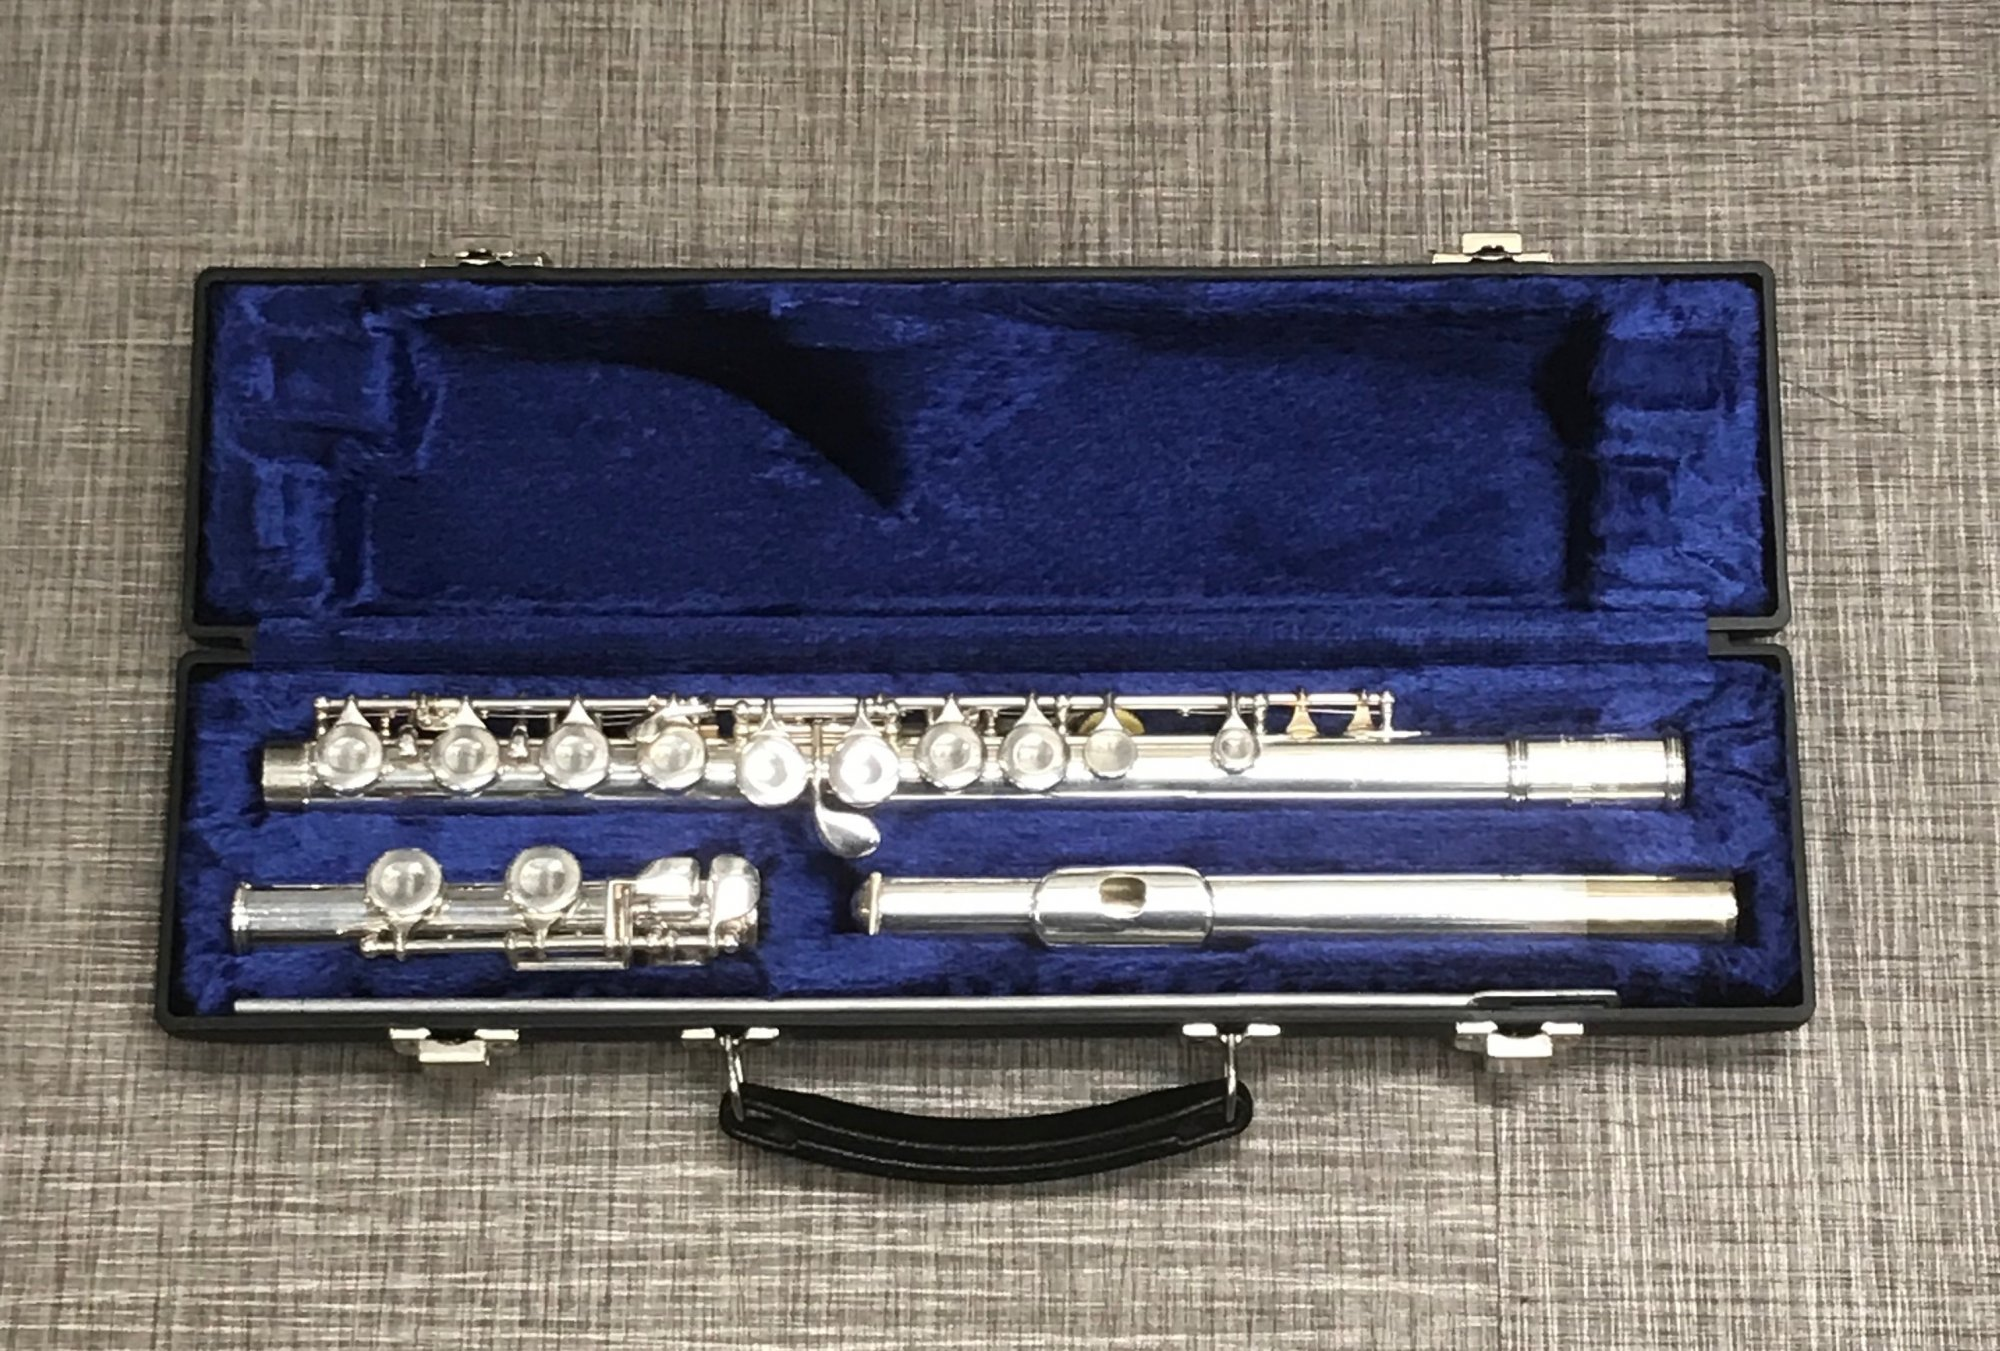 Selmer Bundy II Closed Hole Flute - Used